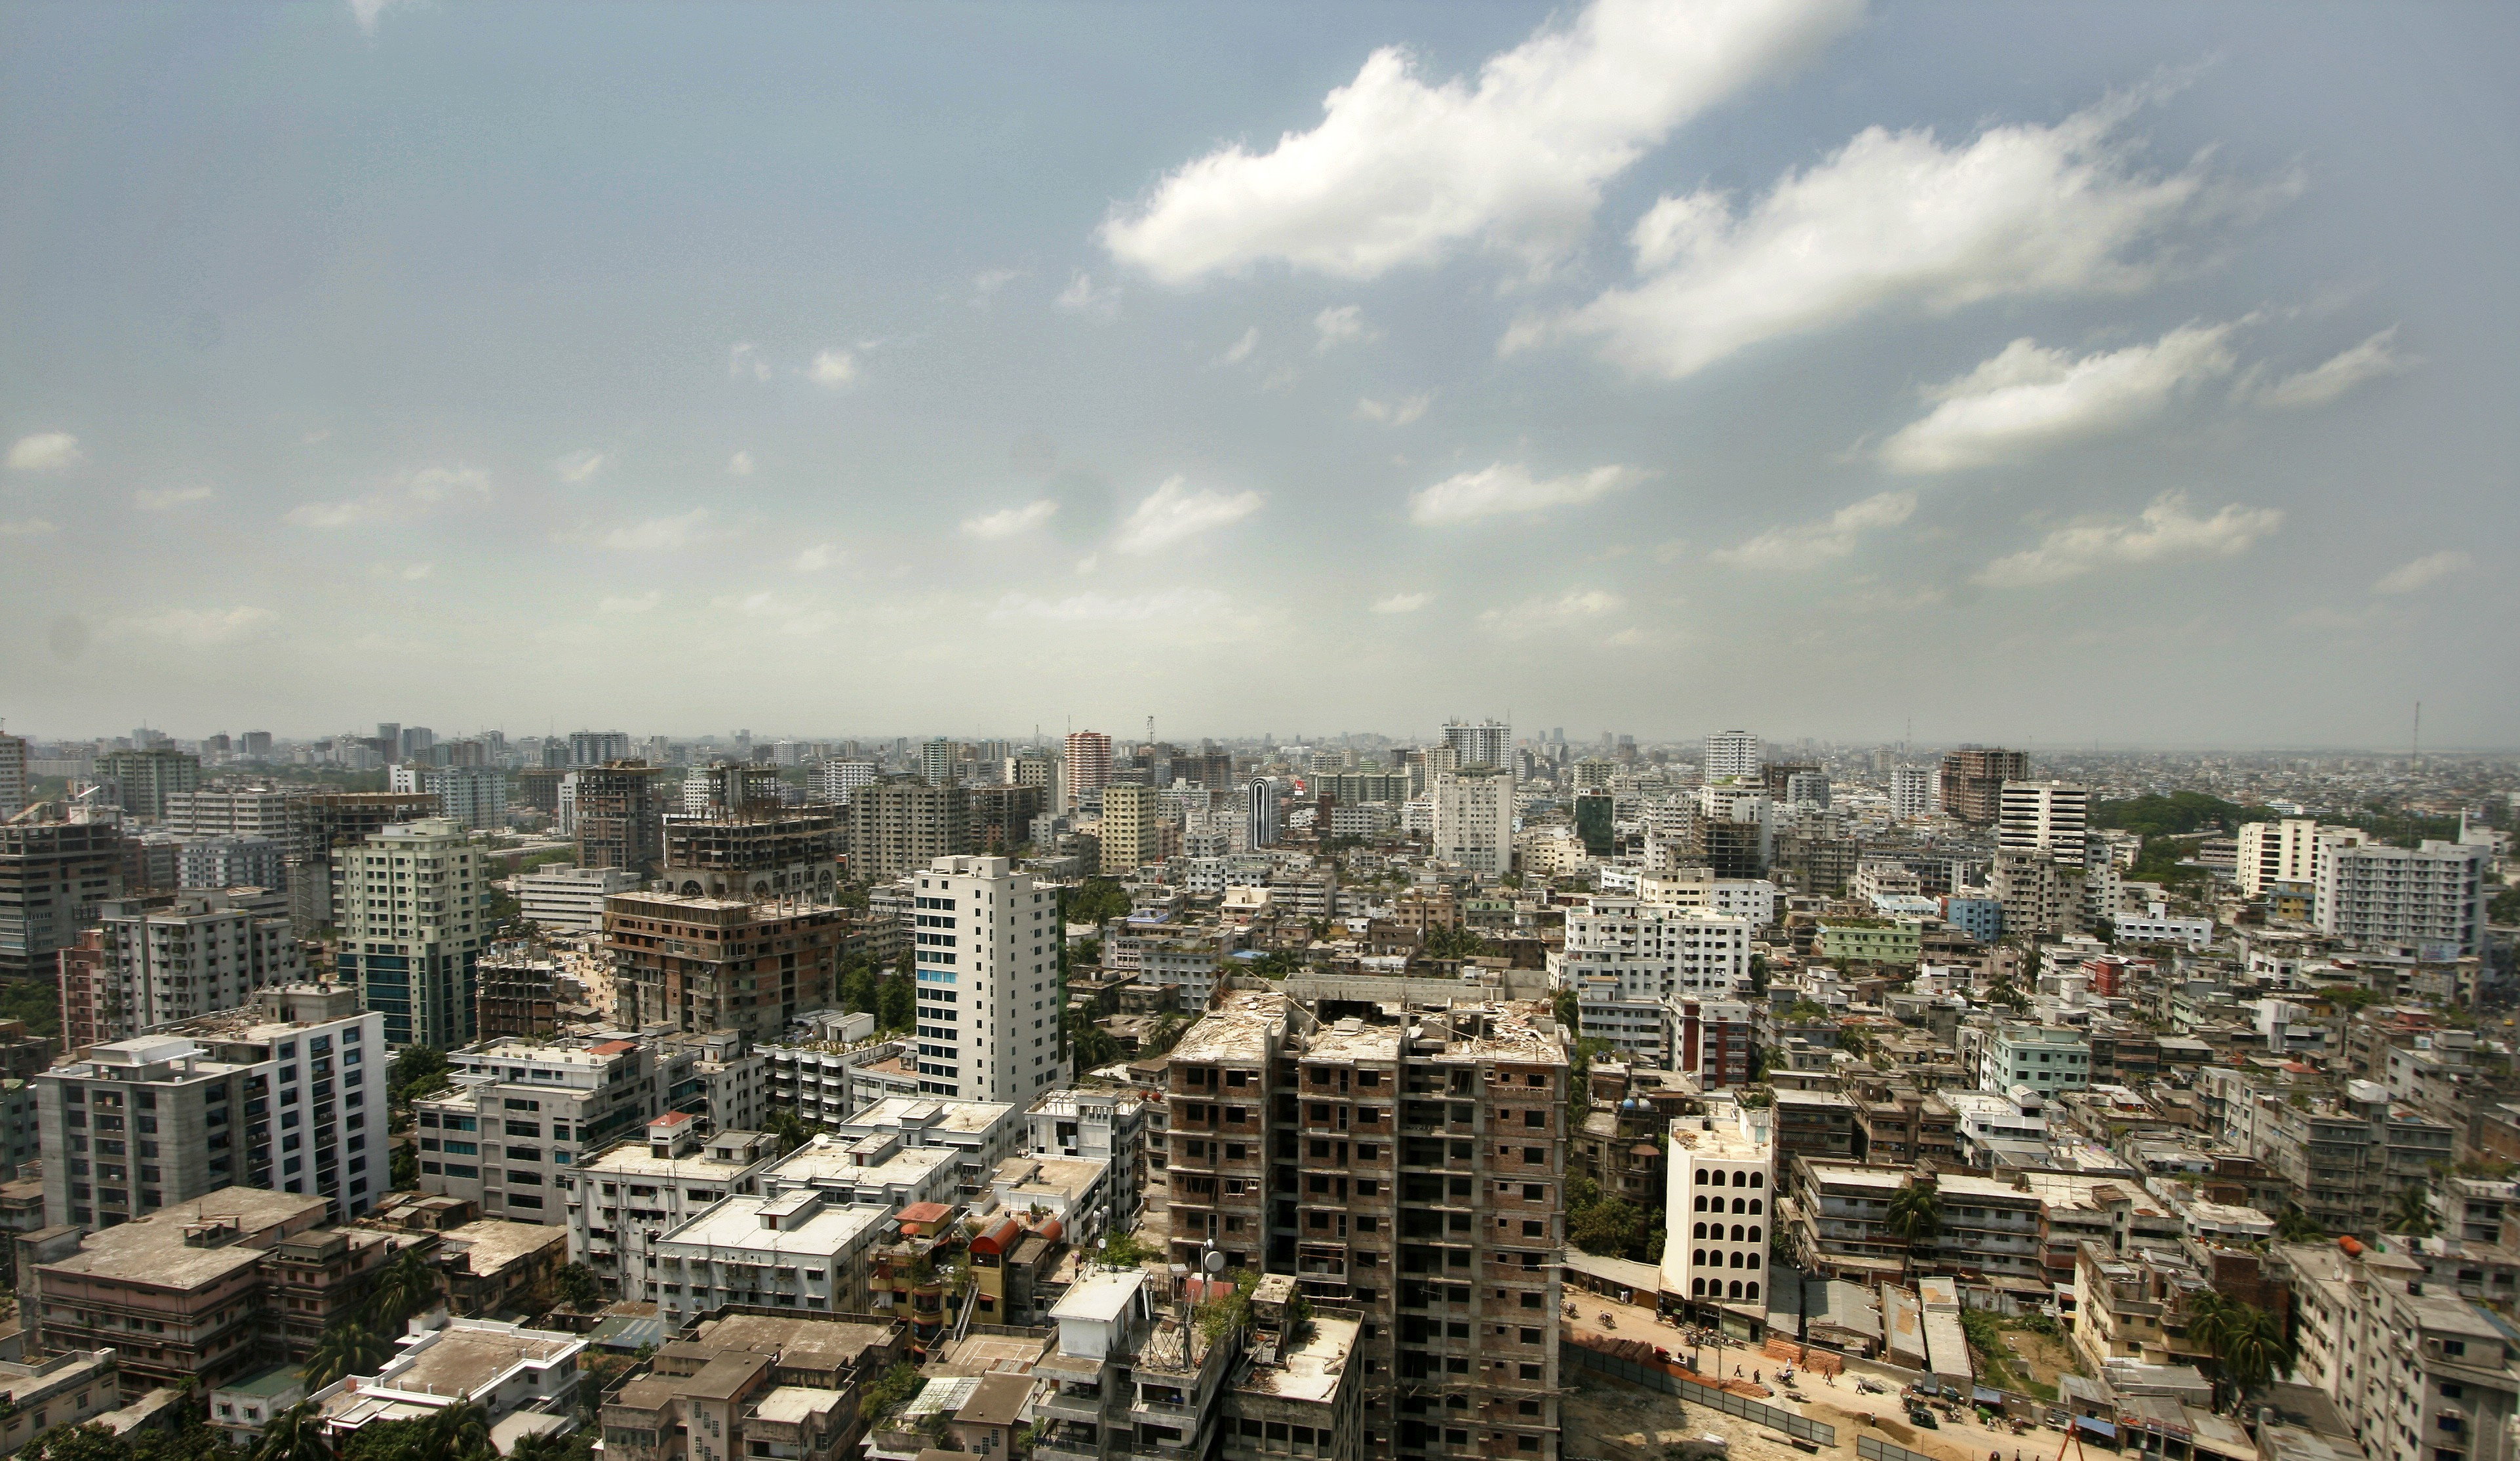 Skyscrapers in Dhaka. Bangladesh is one of the fastest growing economies in Asia. Source: Getty Images